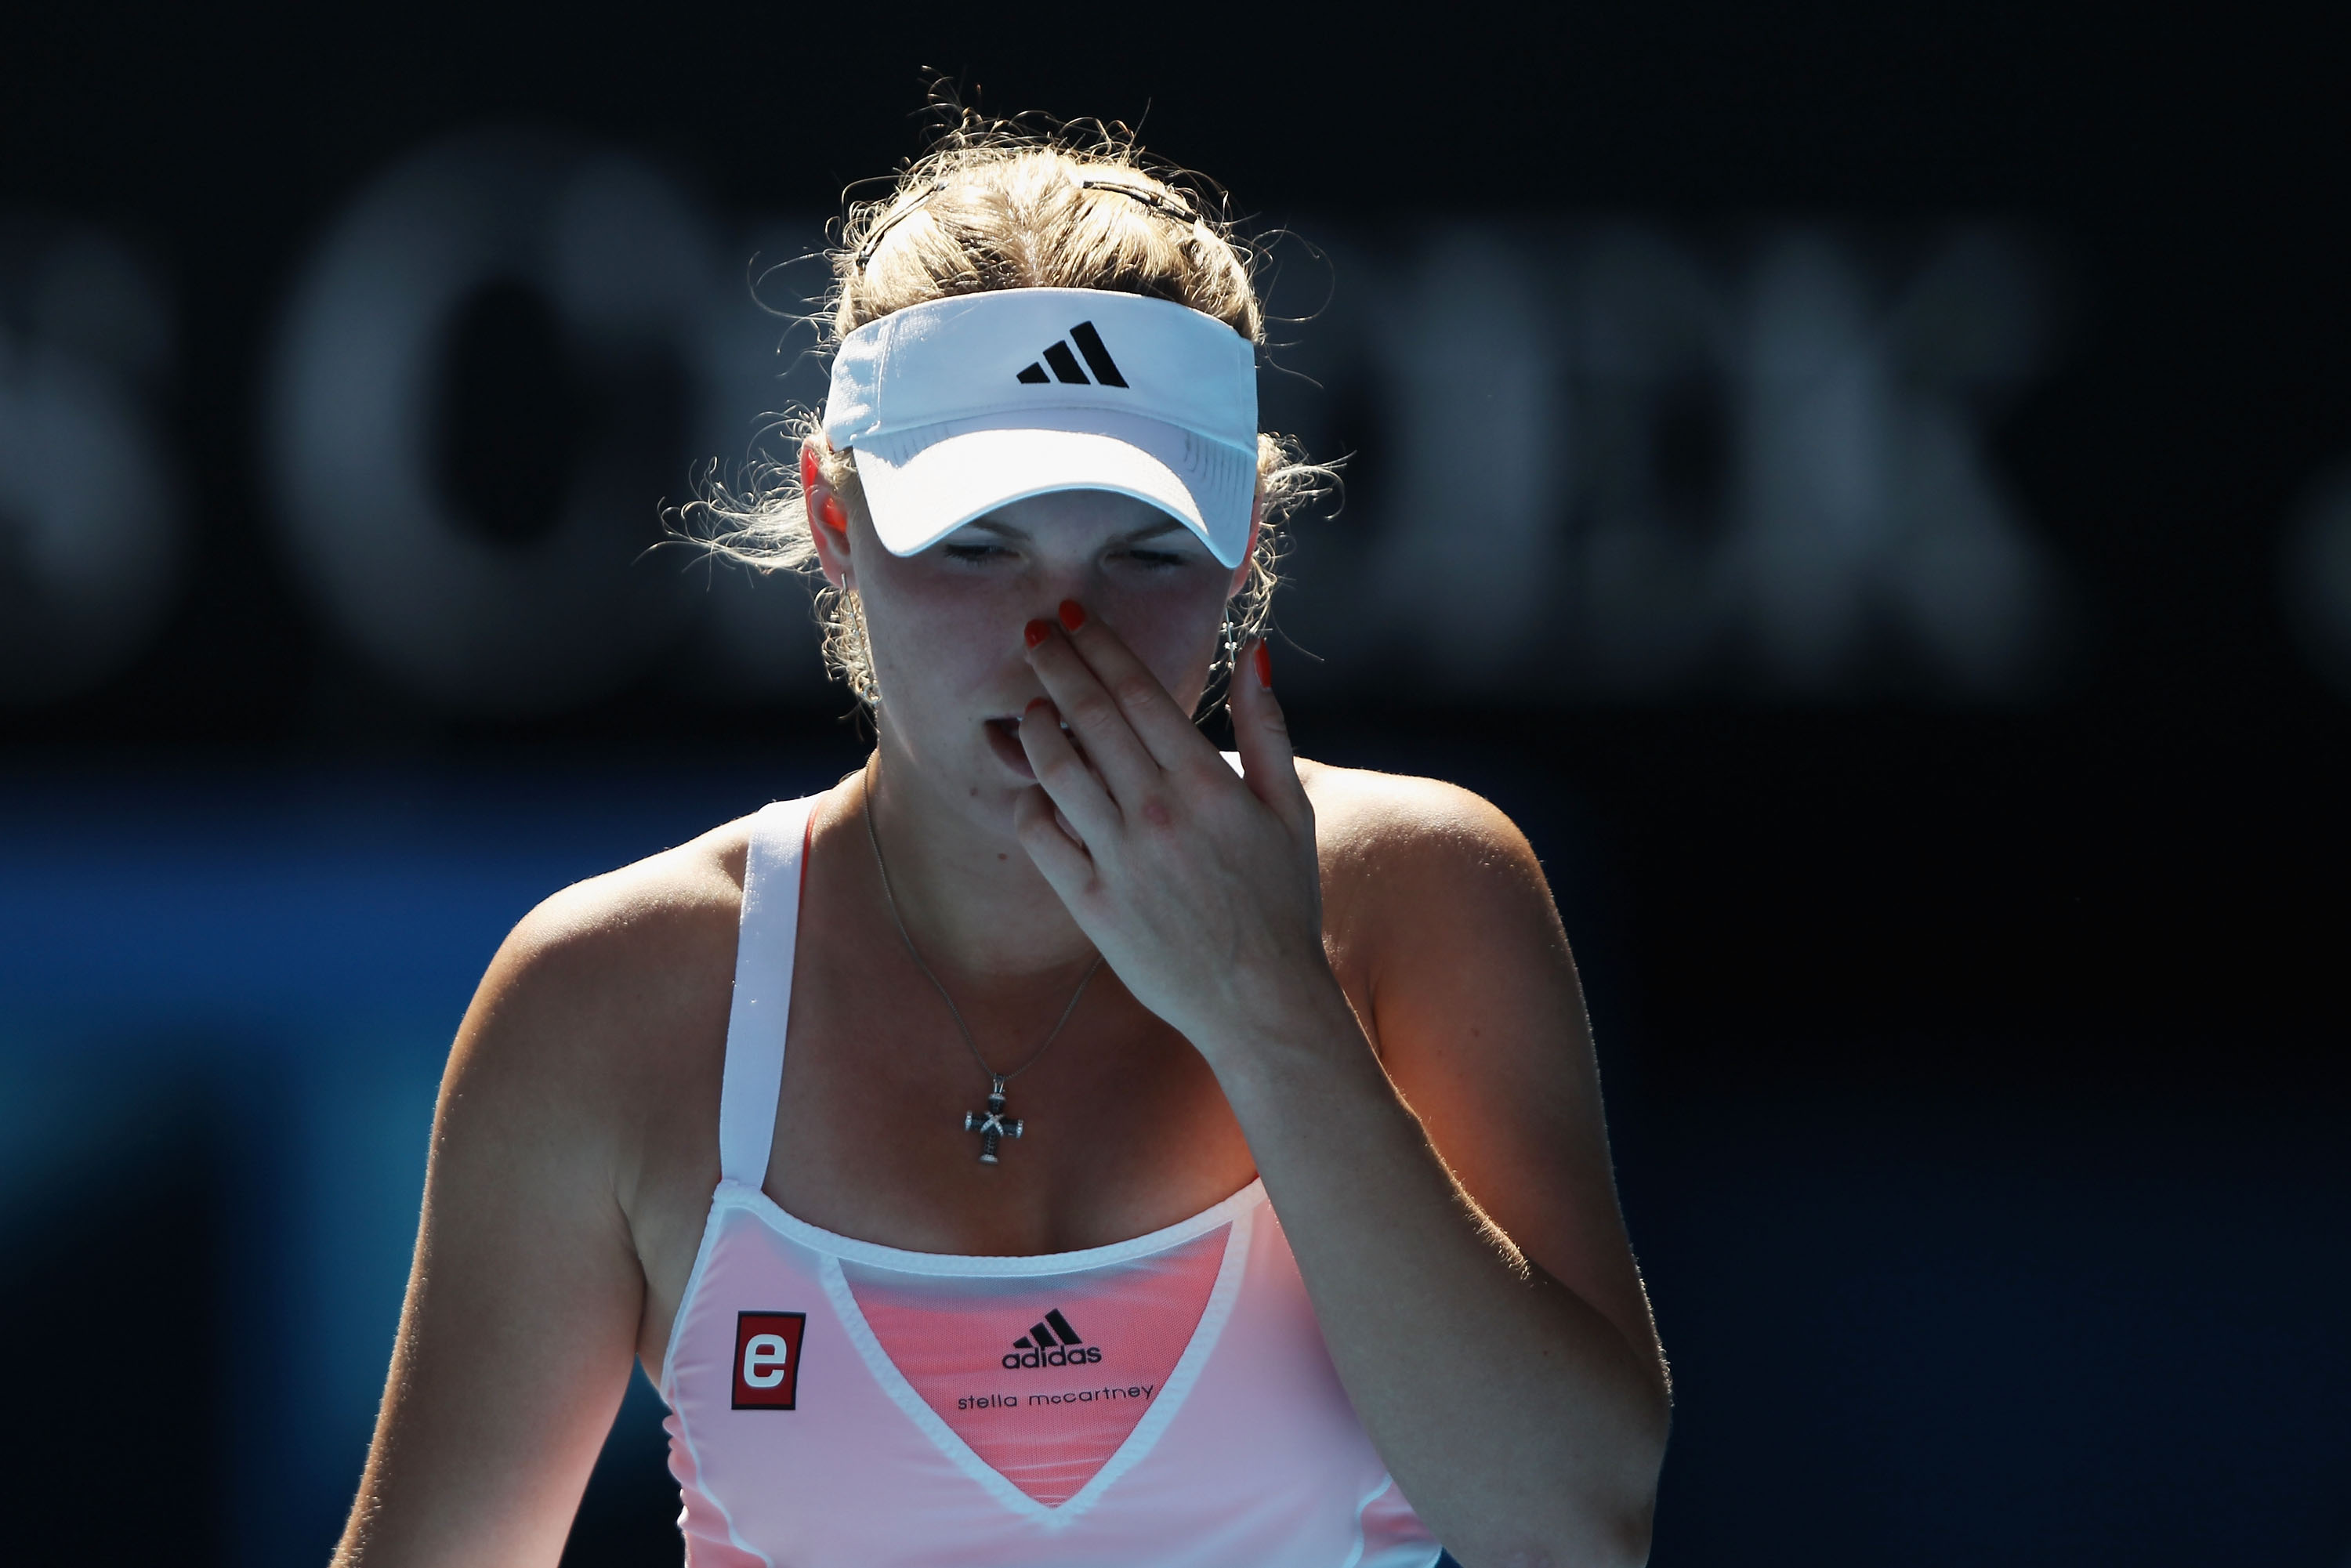 MELBOURNE, AUSTRALIA - JANUARY 27:  Caroline Wozniacki of Denmark looks dejected in her semifinal match against Na Li of China during day eleven of the 2011 Australian Open at Melbourne Park on January 27, 2011 in Melbourne, Australia.  (Photo by Clive Br